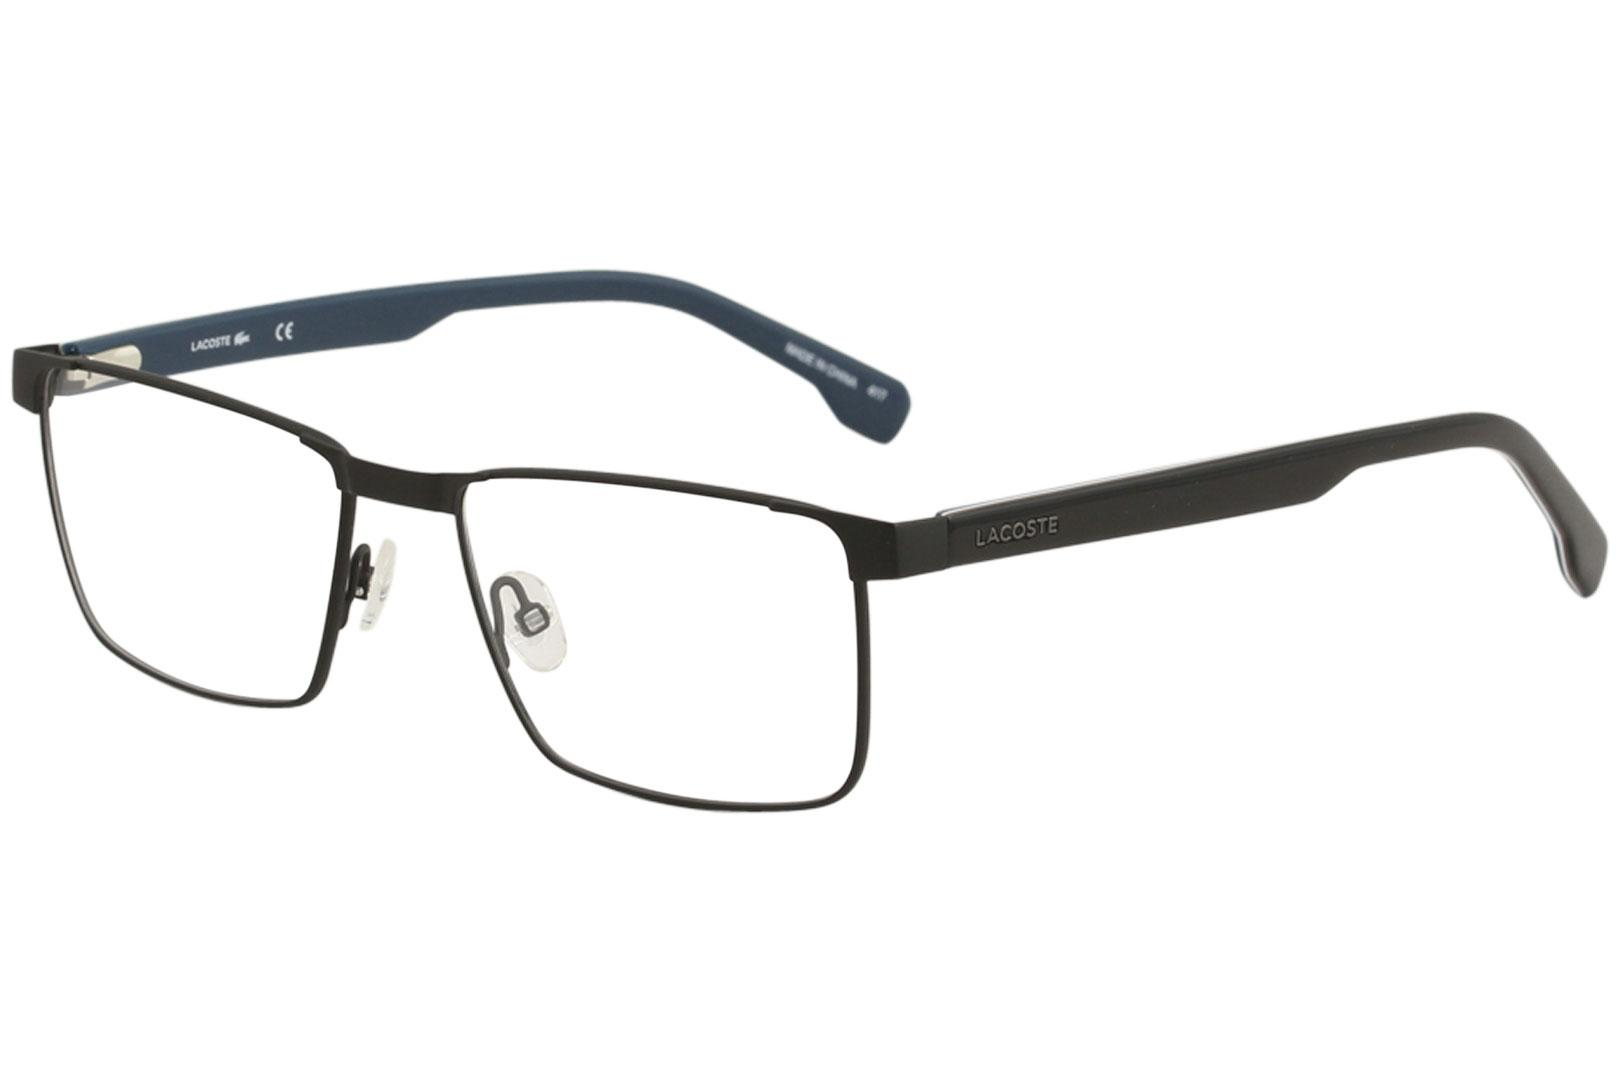 c7e97c6665e Lacoste Men s Eyeglasses L2243 L 2243 Full Rim Optical Frame